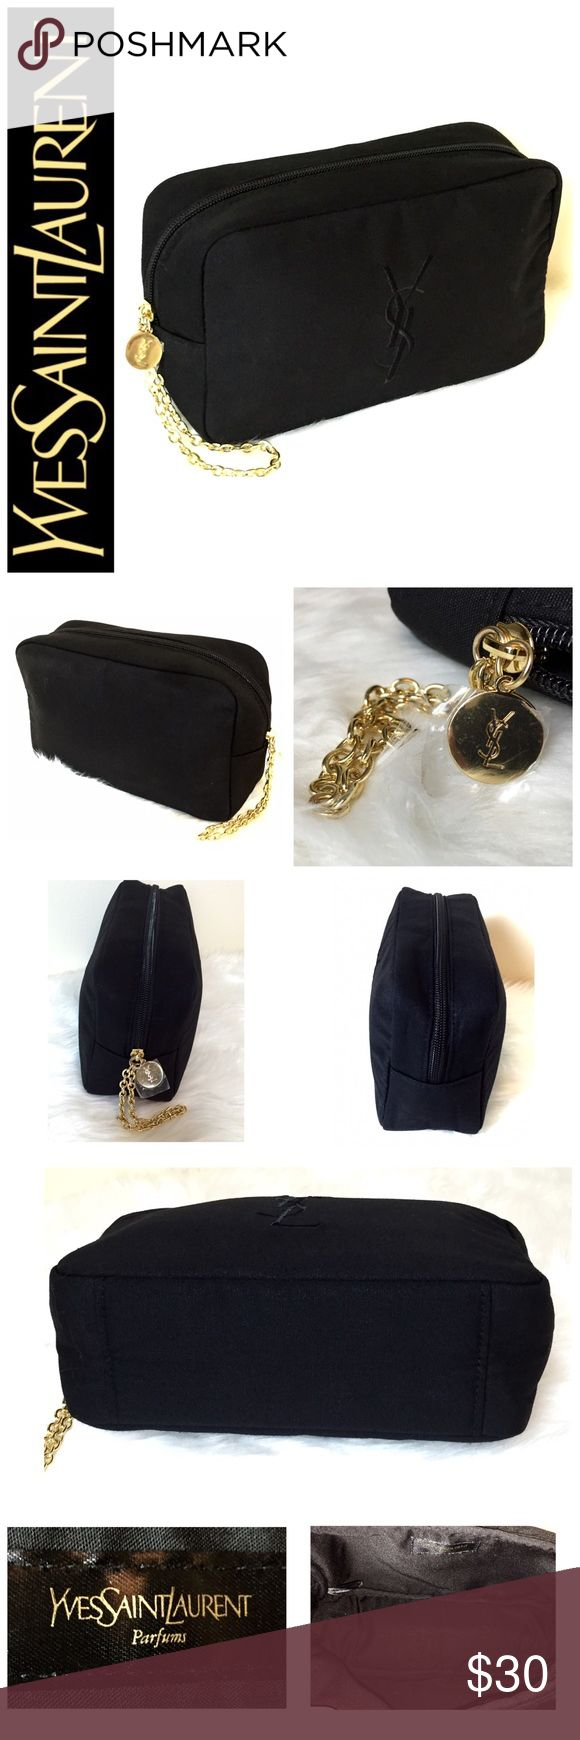 "Yves Saint Laurent Designer Cosmetic Travel Bag Yves Saint Laurent Designer Cosmetic Travel Bag, Beautiful Black YSL Stitching in Black Canvas with Gold Hardware, Approx. Size is 8 1/2""x 5""x 2 3/4"", A Must Have for Every Traveling Woman, NWOT! Bags Cosmetic Bags & Cases"